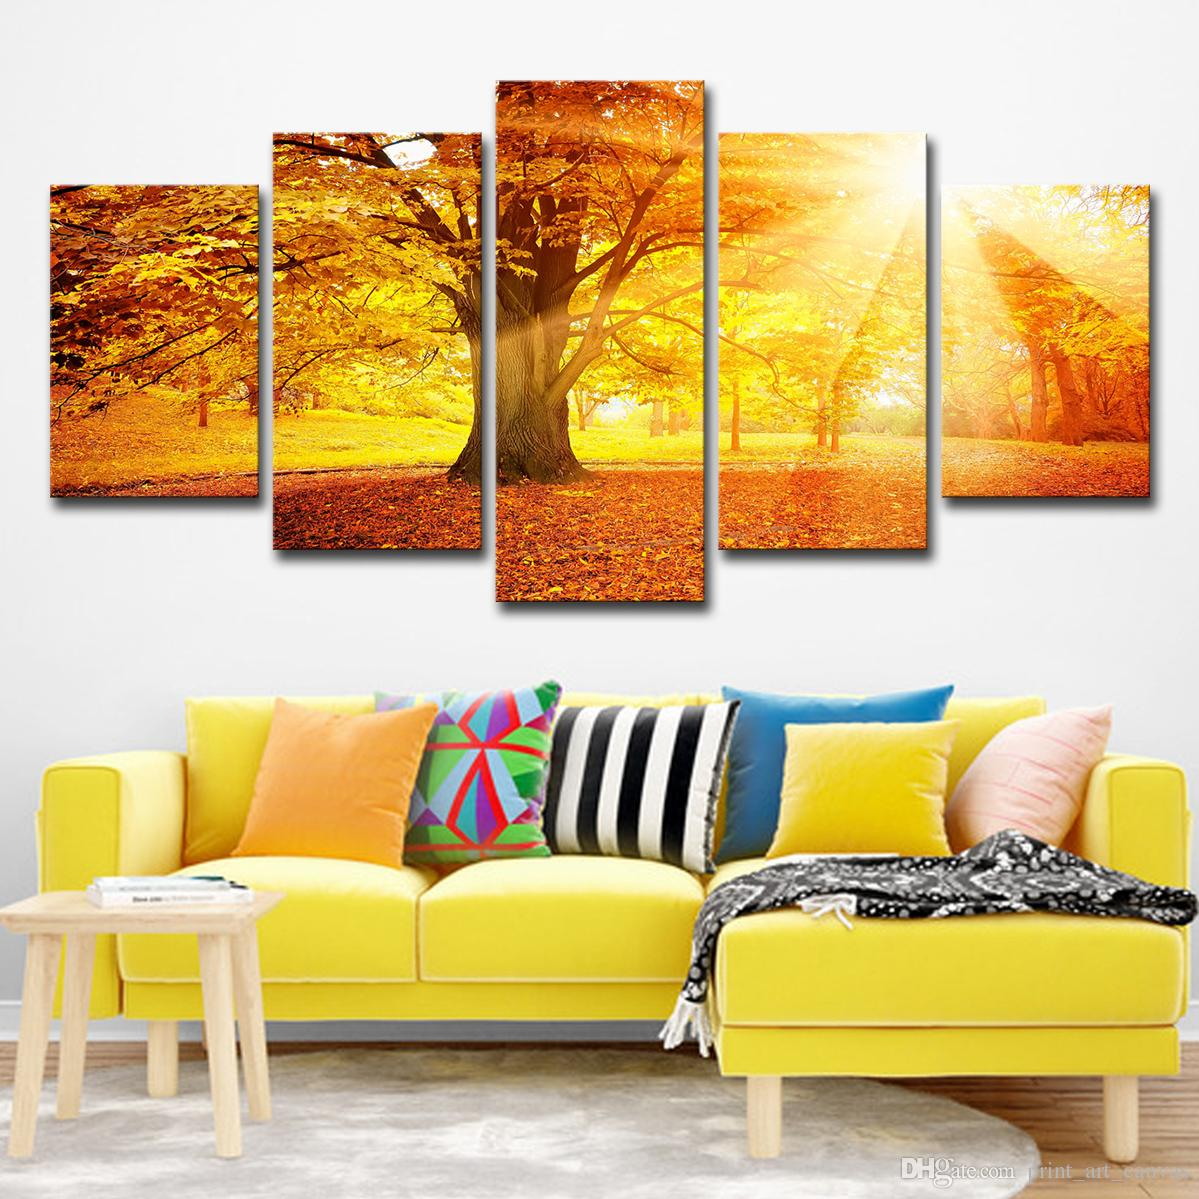 2019 modern home decor canvas painting hd printed room wall art poster 5 panel autumn morning woods landscape pictures from print art canvas